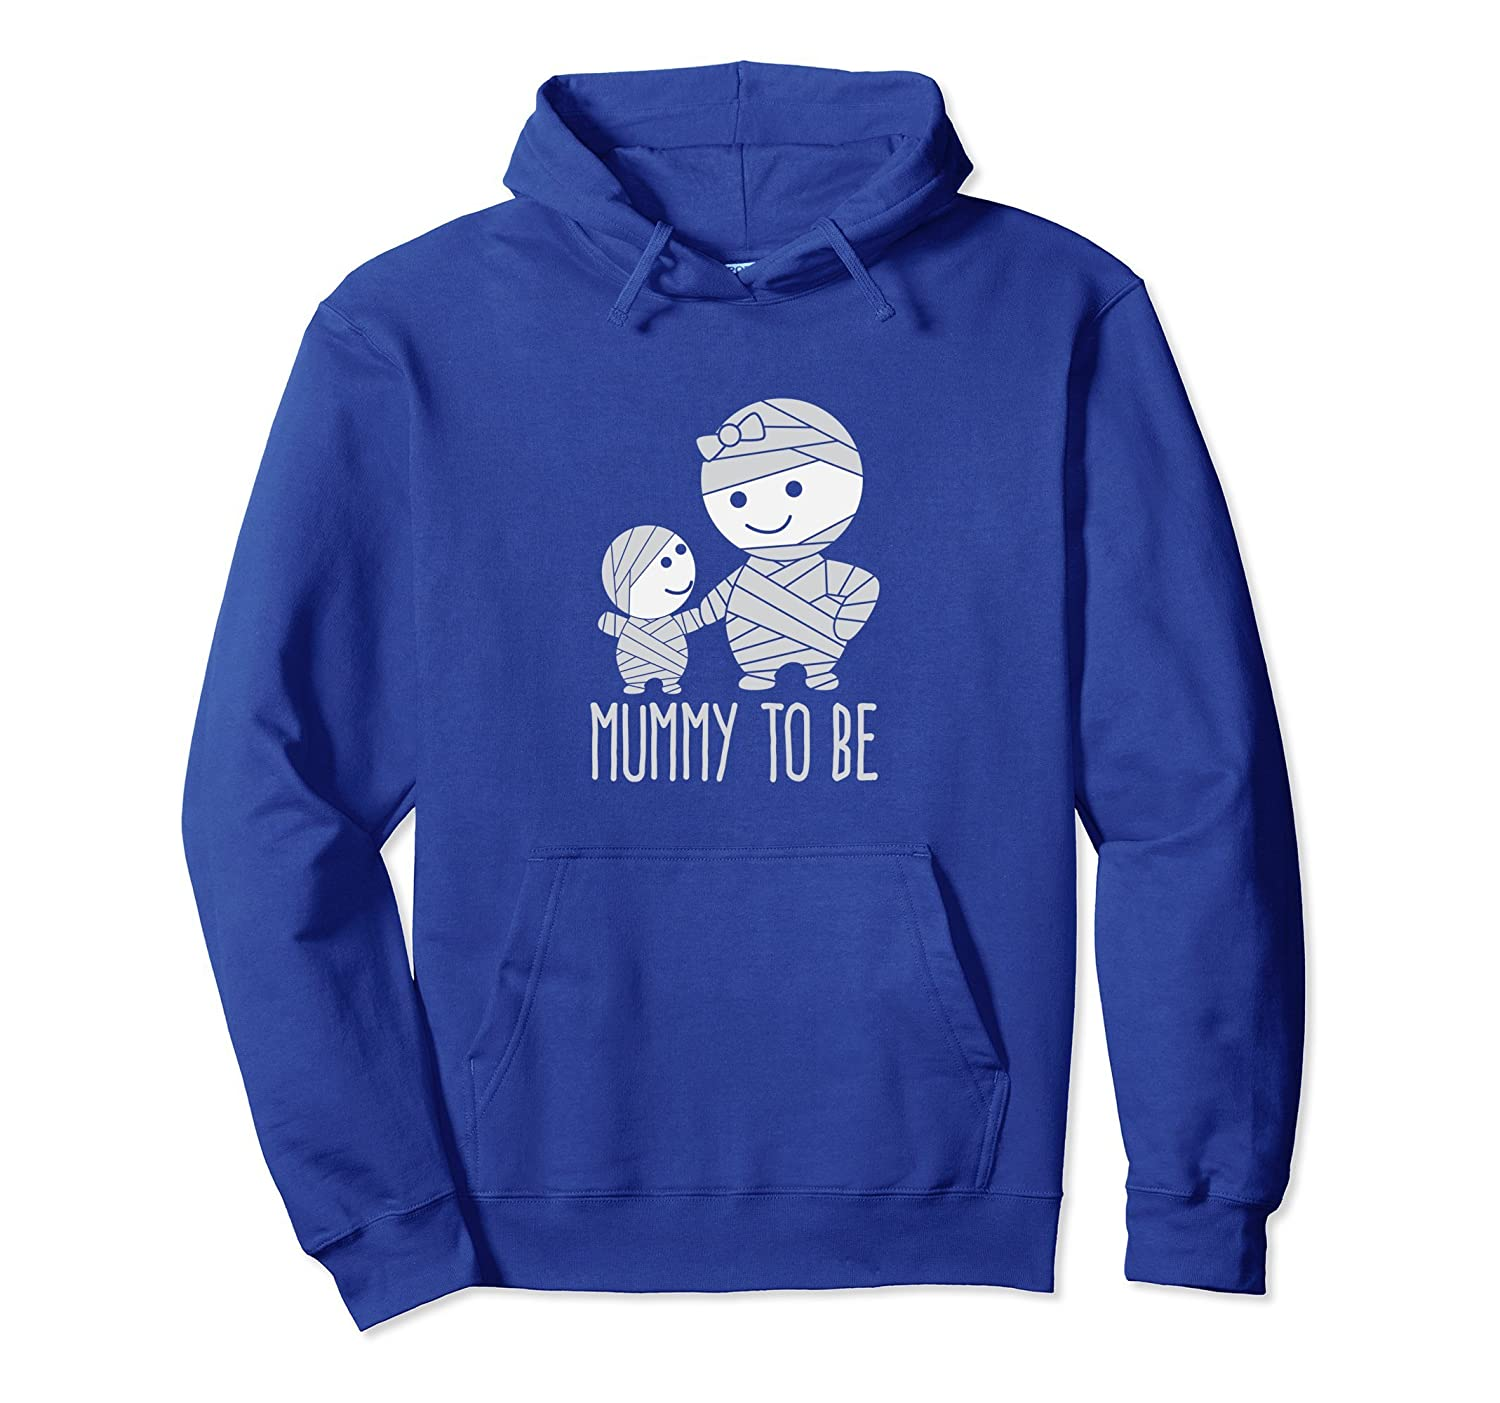 Mummy To Be Cute Mom Halloween Hoodie-mt